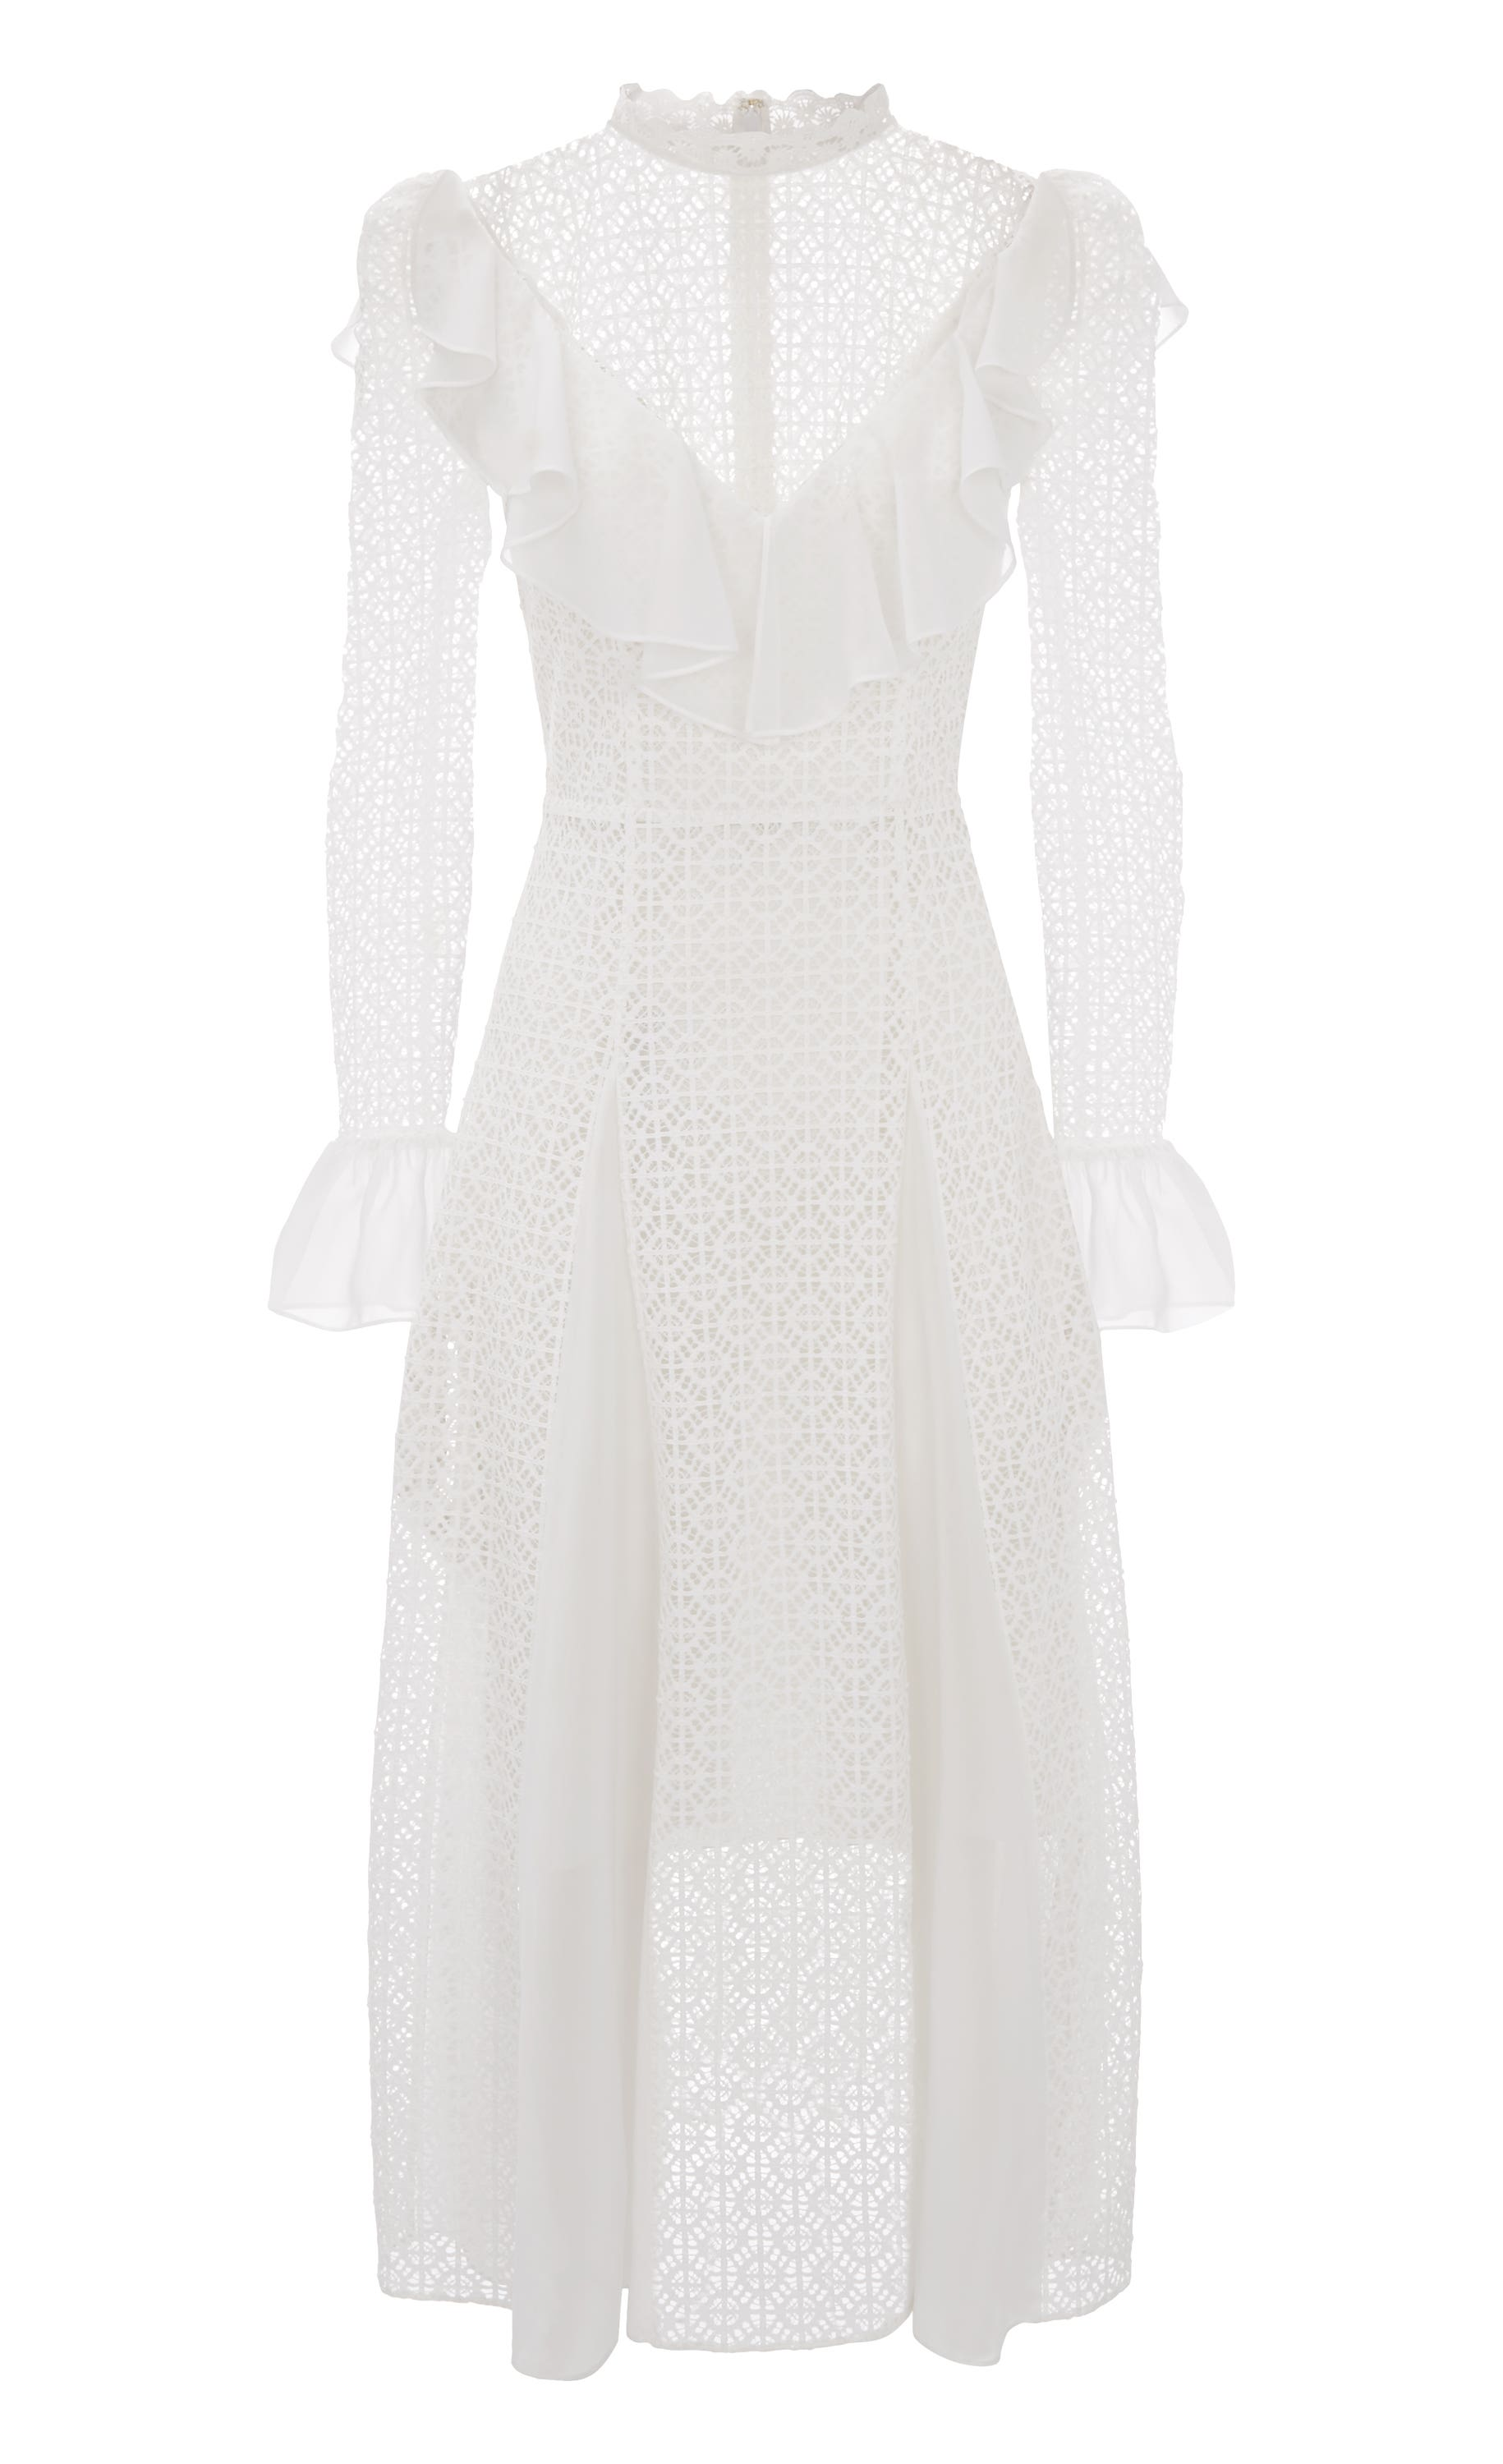 Prairie Lace Ruffle Dress, White